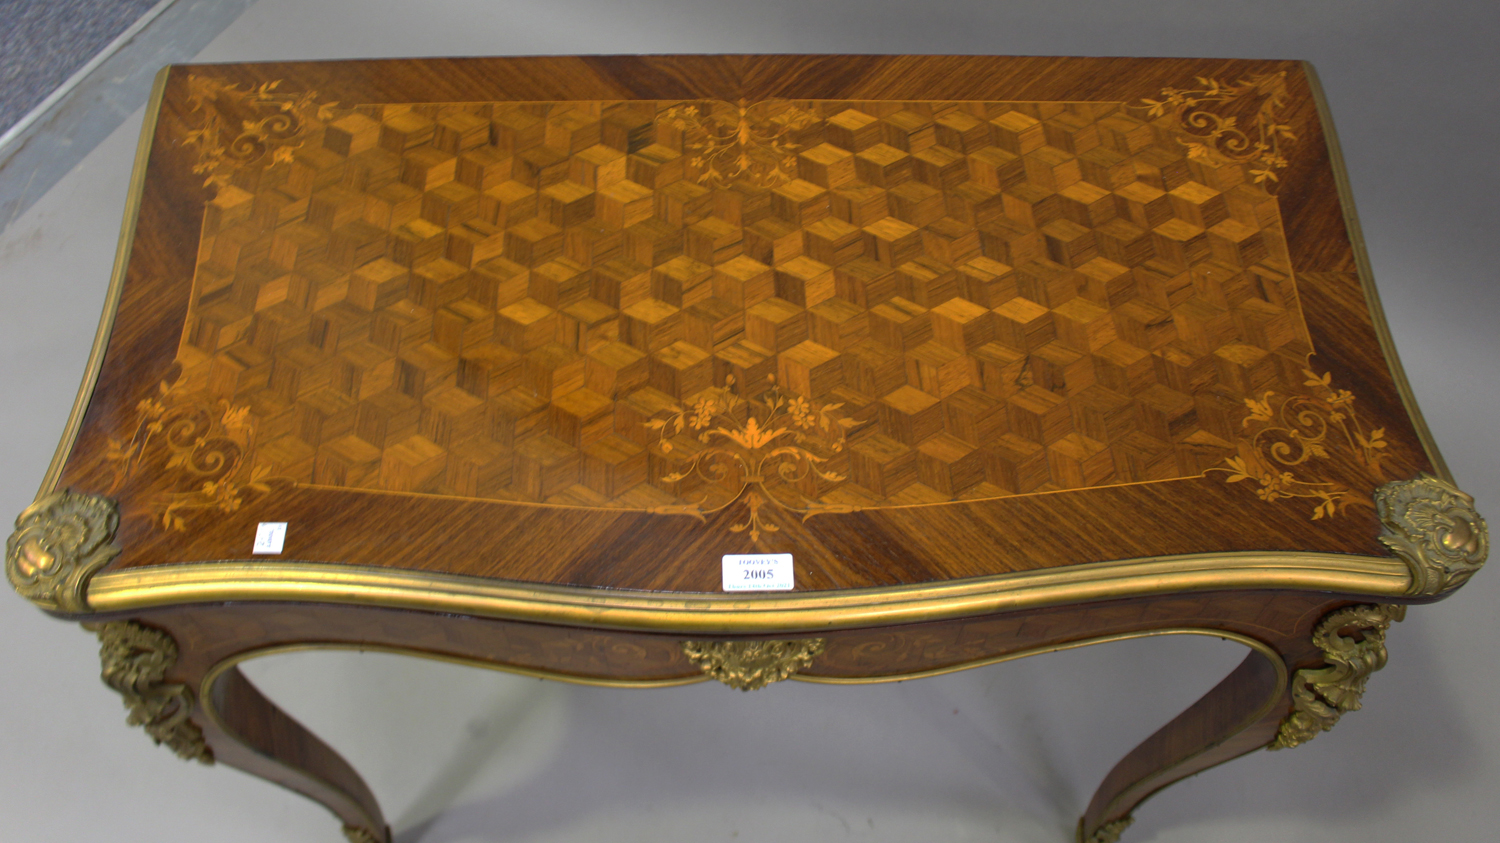 A late 19th century Louis XV style kingwood and parquetry veneered fold-over card table with gilt - Image 7 of 7